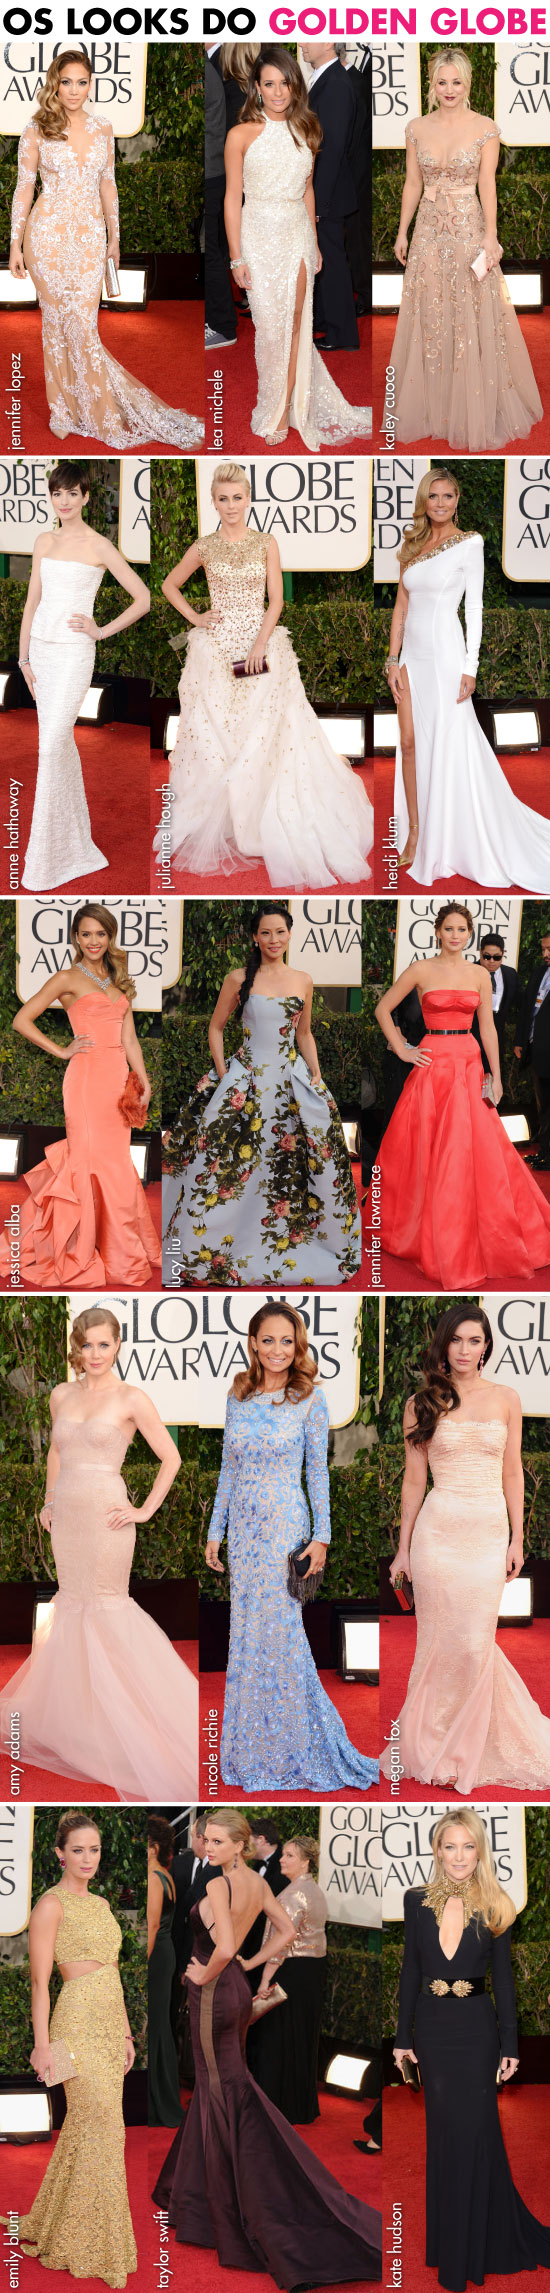 looks-red-carpet-golden-globe-awards-2013